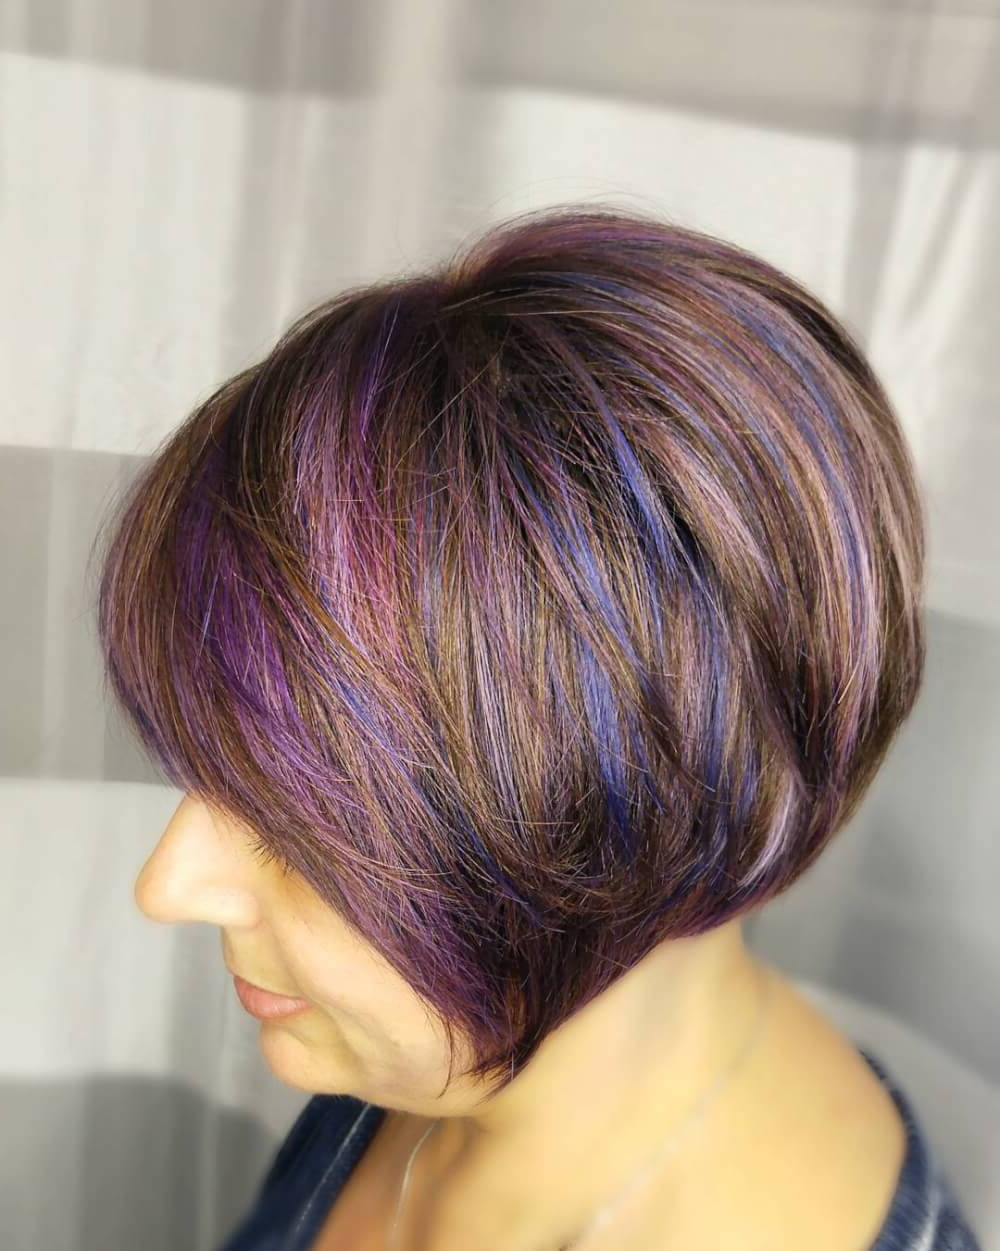 39 Classiest Short Hairstyles For Women Over 50 Of 2018 With Regard To Short Hairstyles For Ladies Over  (View 8 of 25)